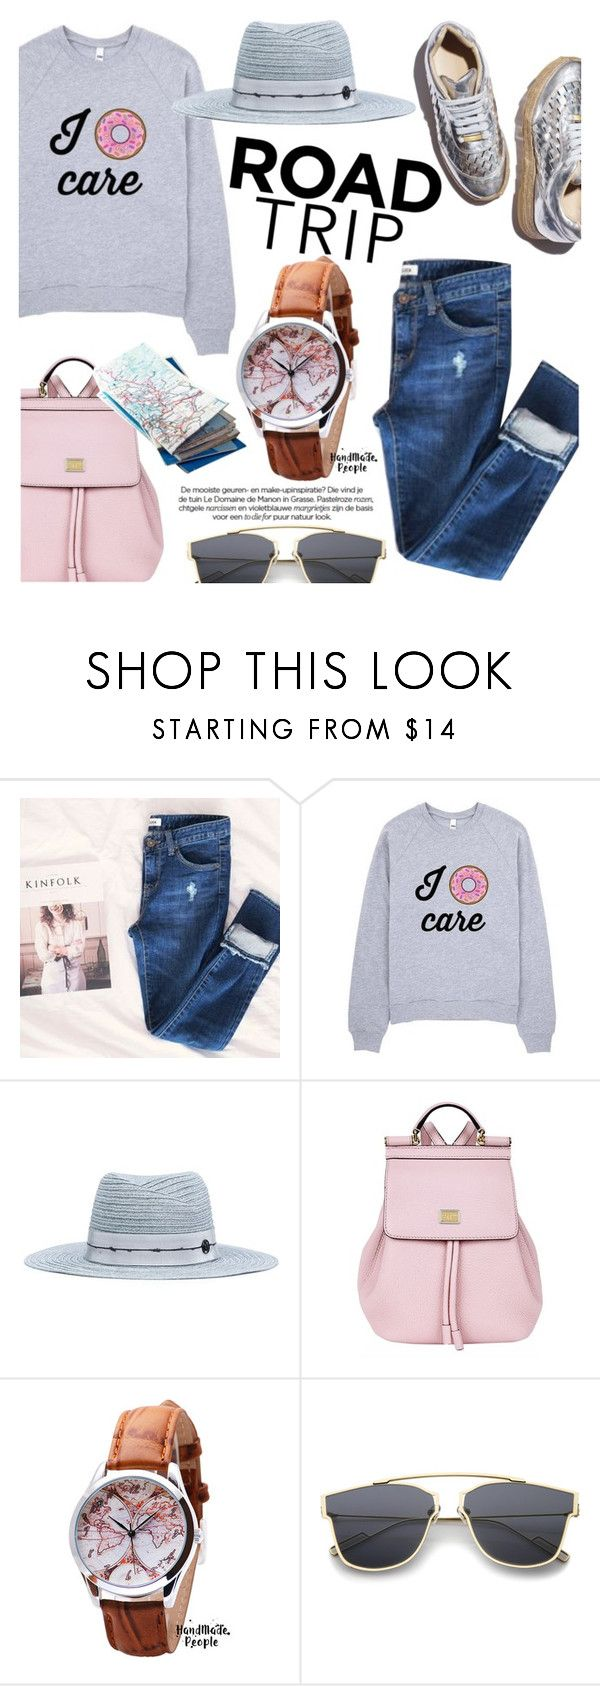 """""""Summer Road Trip Essentials/Handmade People"""" by helenevlacho ❤ liked on Polyvore featuring Hotping, Maison Margiela, Dolce&Gabbana, vintage, roadtrip, contestentry and handmadepeople"""